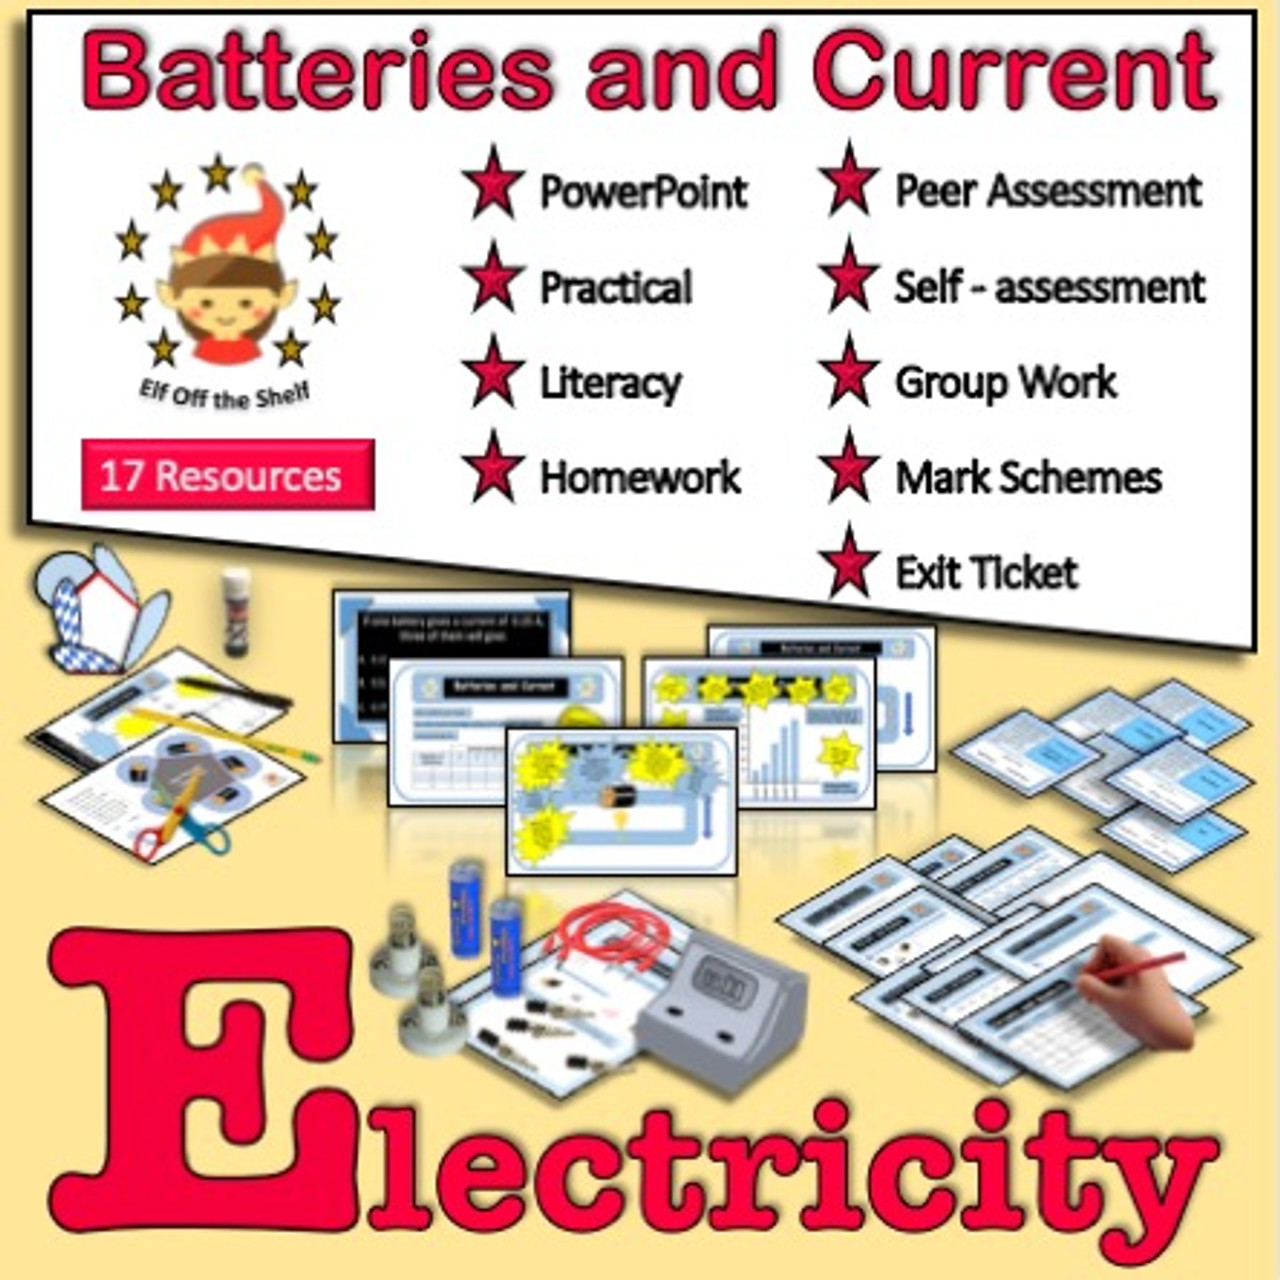 Does the Number of Batteries Affect the Current  - and Why